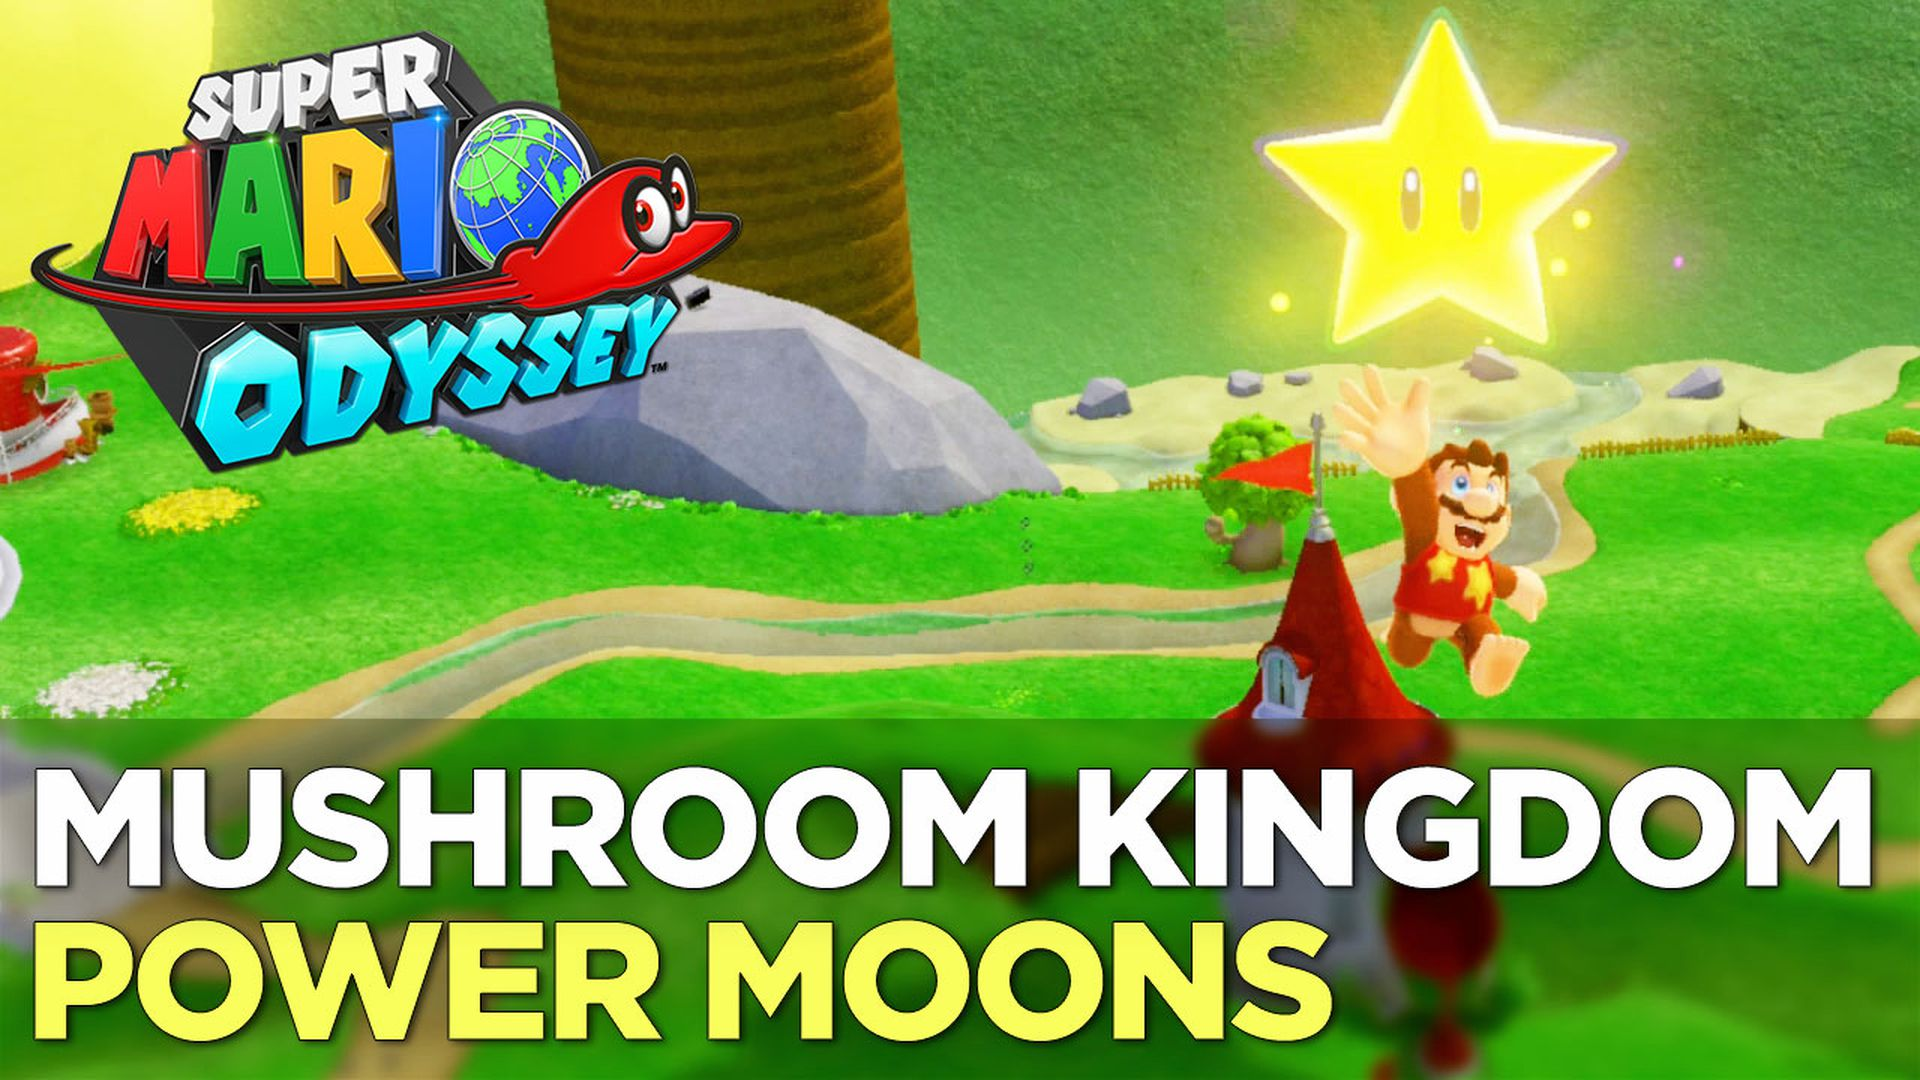 Super Mario Odyssey Guide Mushroom Kingdom All Power Moon